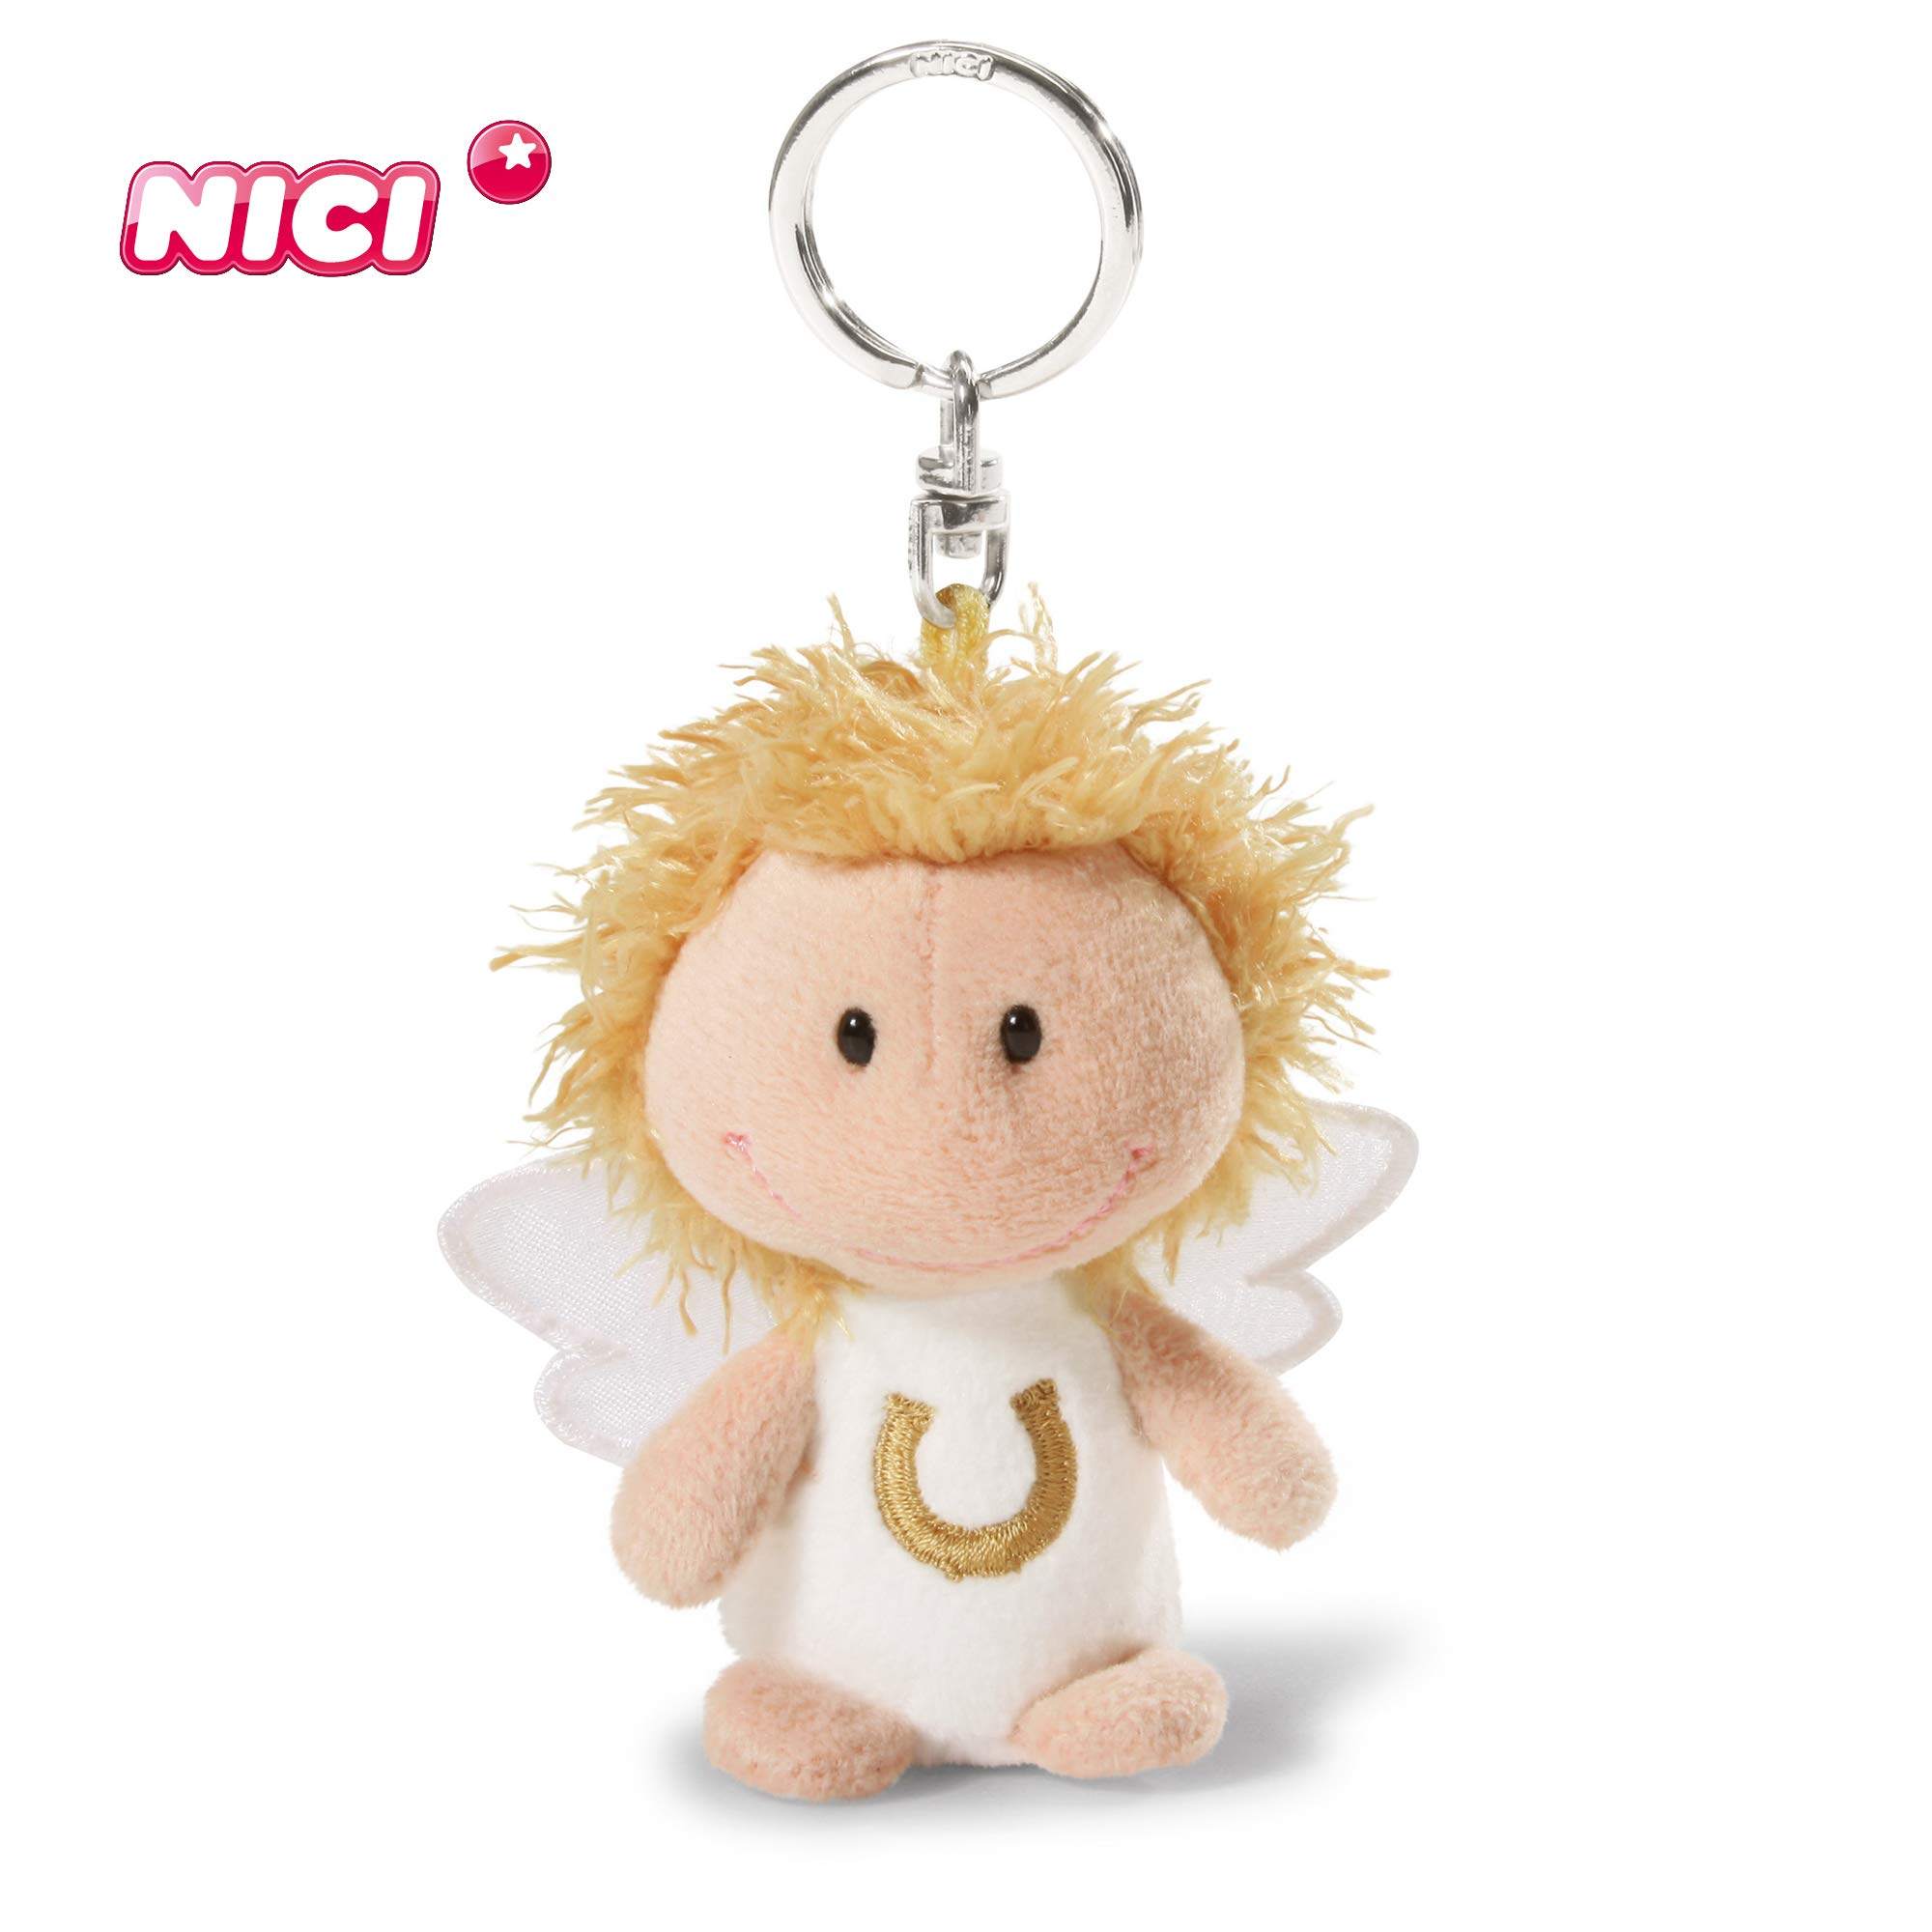 NICI Guardian Angel 'I'll Watch Over You' Keyholder (White)